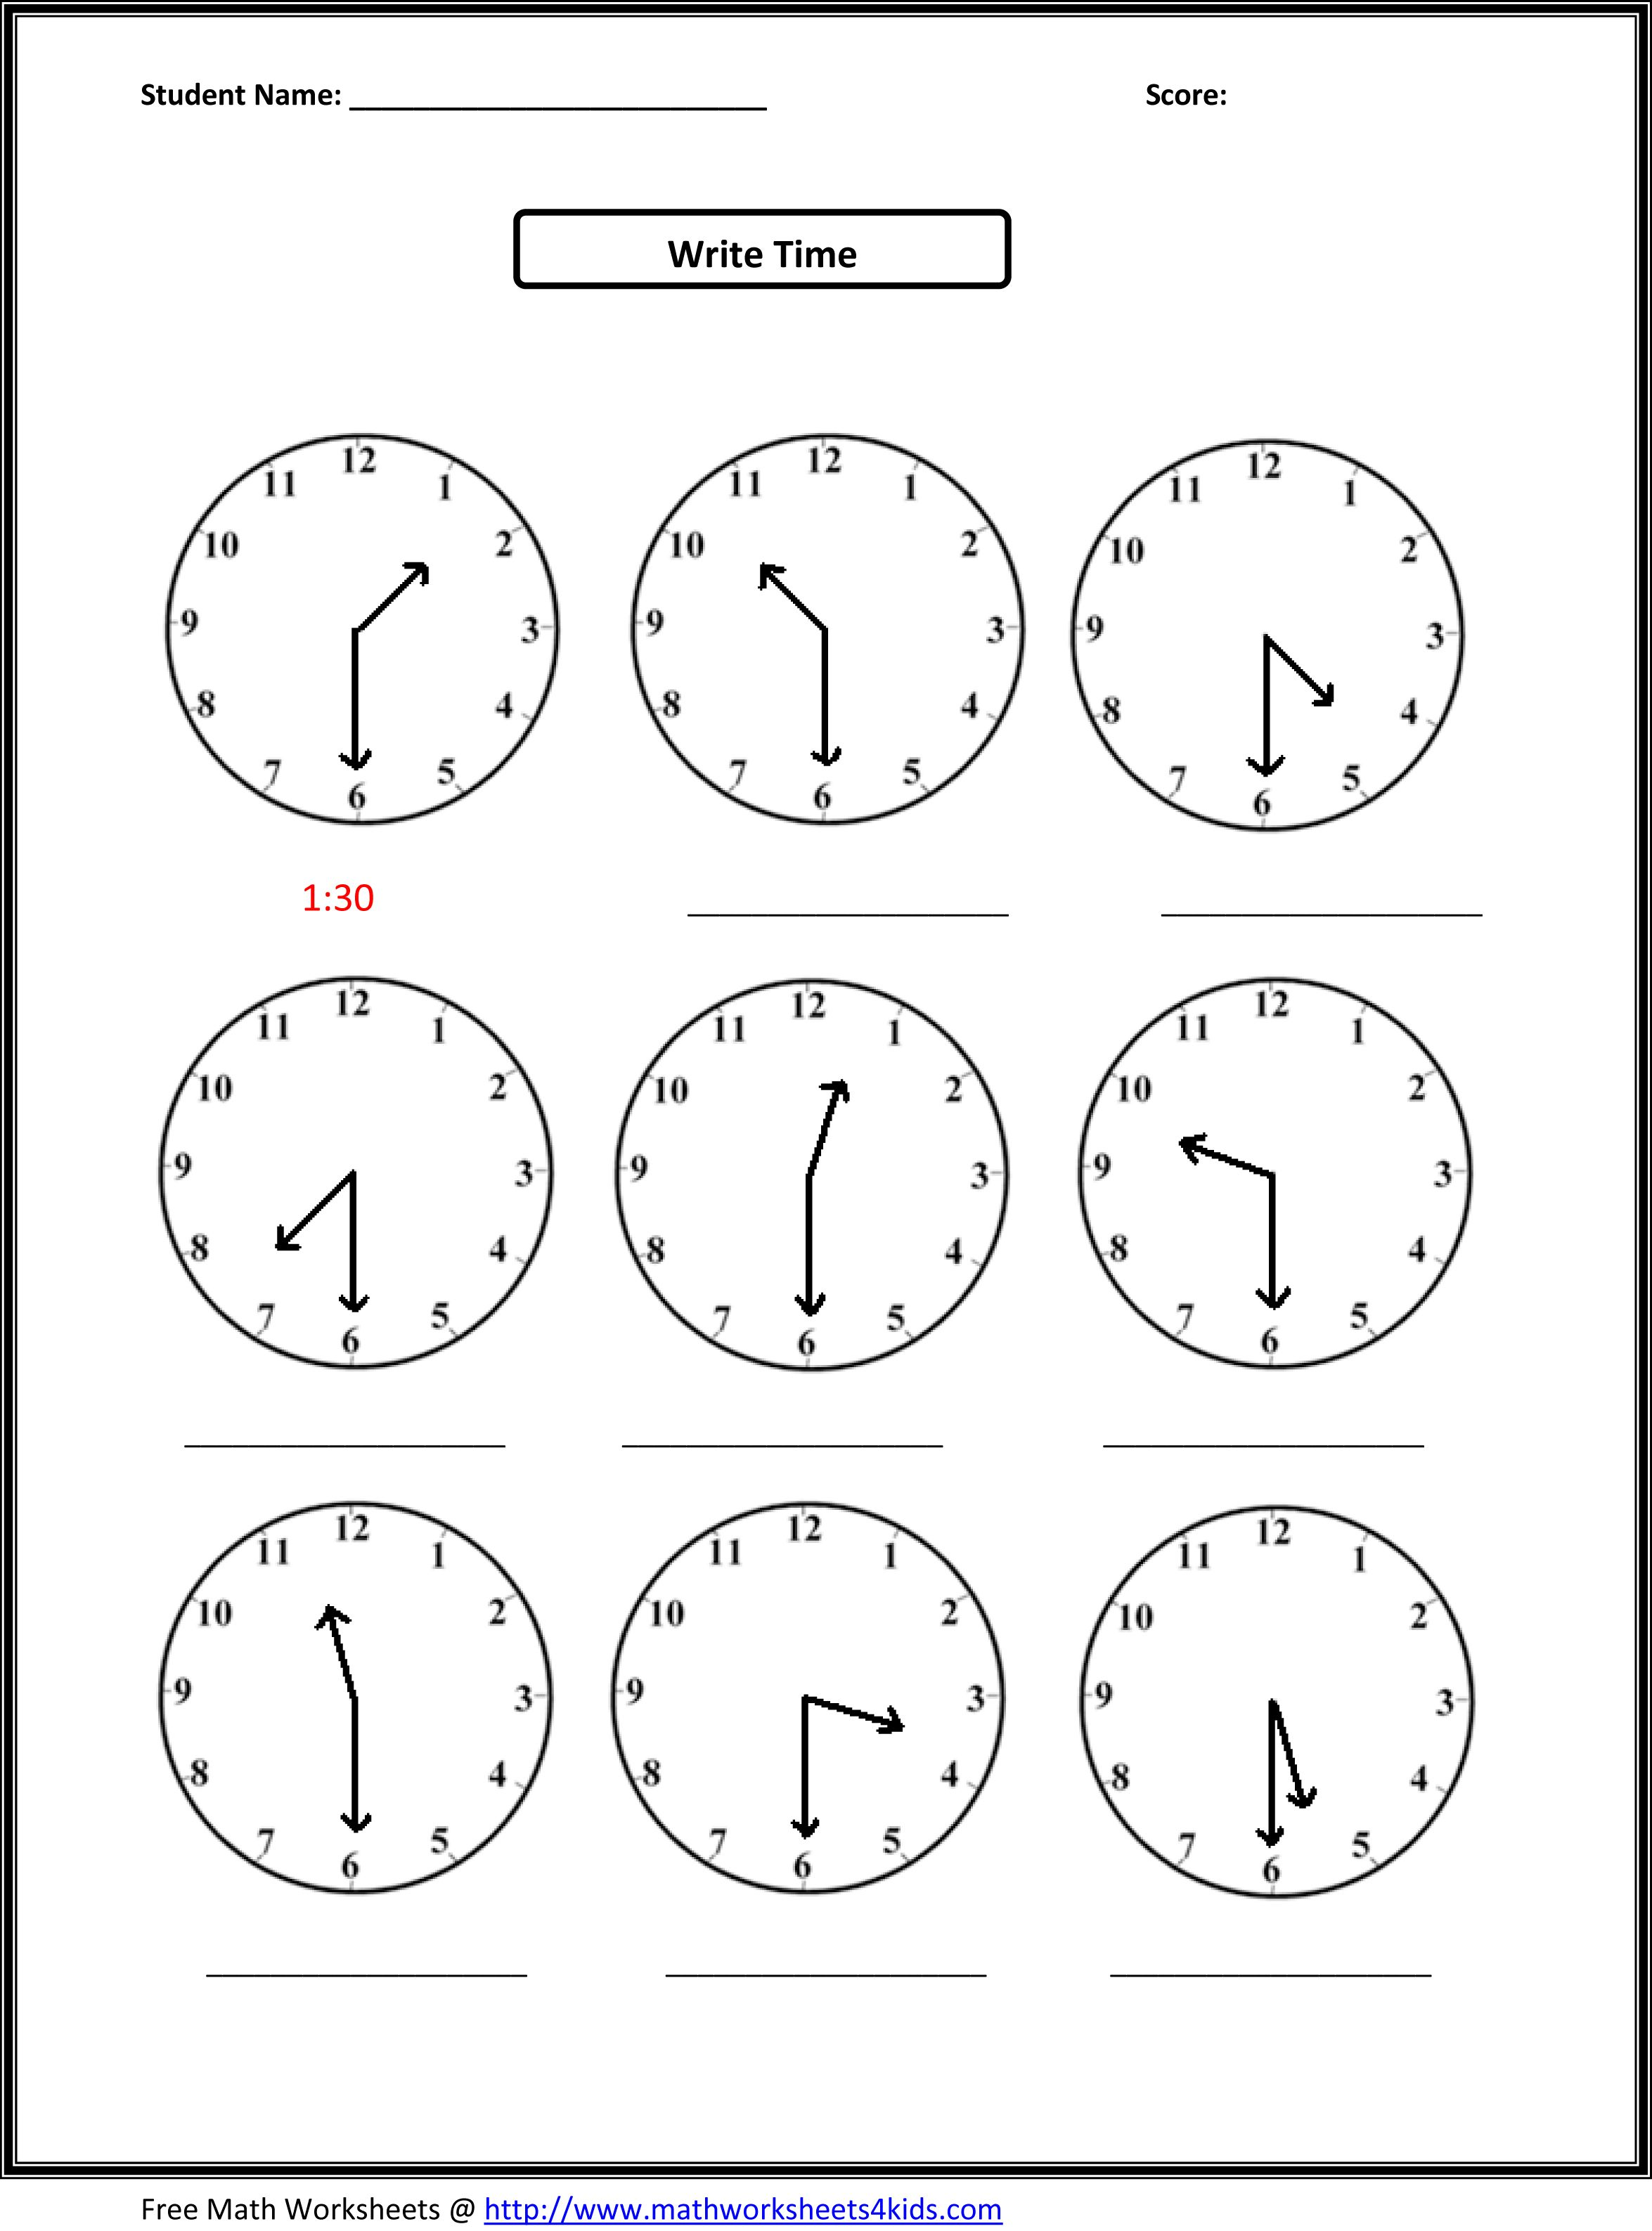 Weirdmailus  Ravishing Worksheet On Time For Grade   Reocurent With Glamorous Free Printable Telling Time Worksheets Nd Grade  Reocurent With Beautiful Angles Of A Polygon Worksheet Also Subjunctive Spanish Worksheets In Addition Geometry Scale Factor Worksheet And Grade  Worksheets As Well As Las Posadas Worksheets Additionally Grammar Worksheets Esl From Reocurentcom With Weirdmailus  Glamorous Worksheet On Time For Grade   Reocurent With Beautiful Free Printable Telling Time Worksheets Nd Grade  Reocurent And Ravishing Angles Of A Polygon Worksheet Also Subjunctive Spanish Worksheets In Addition Geometry Scale Factor Worksheet From Reocurentcom